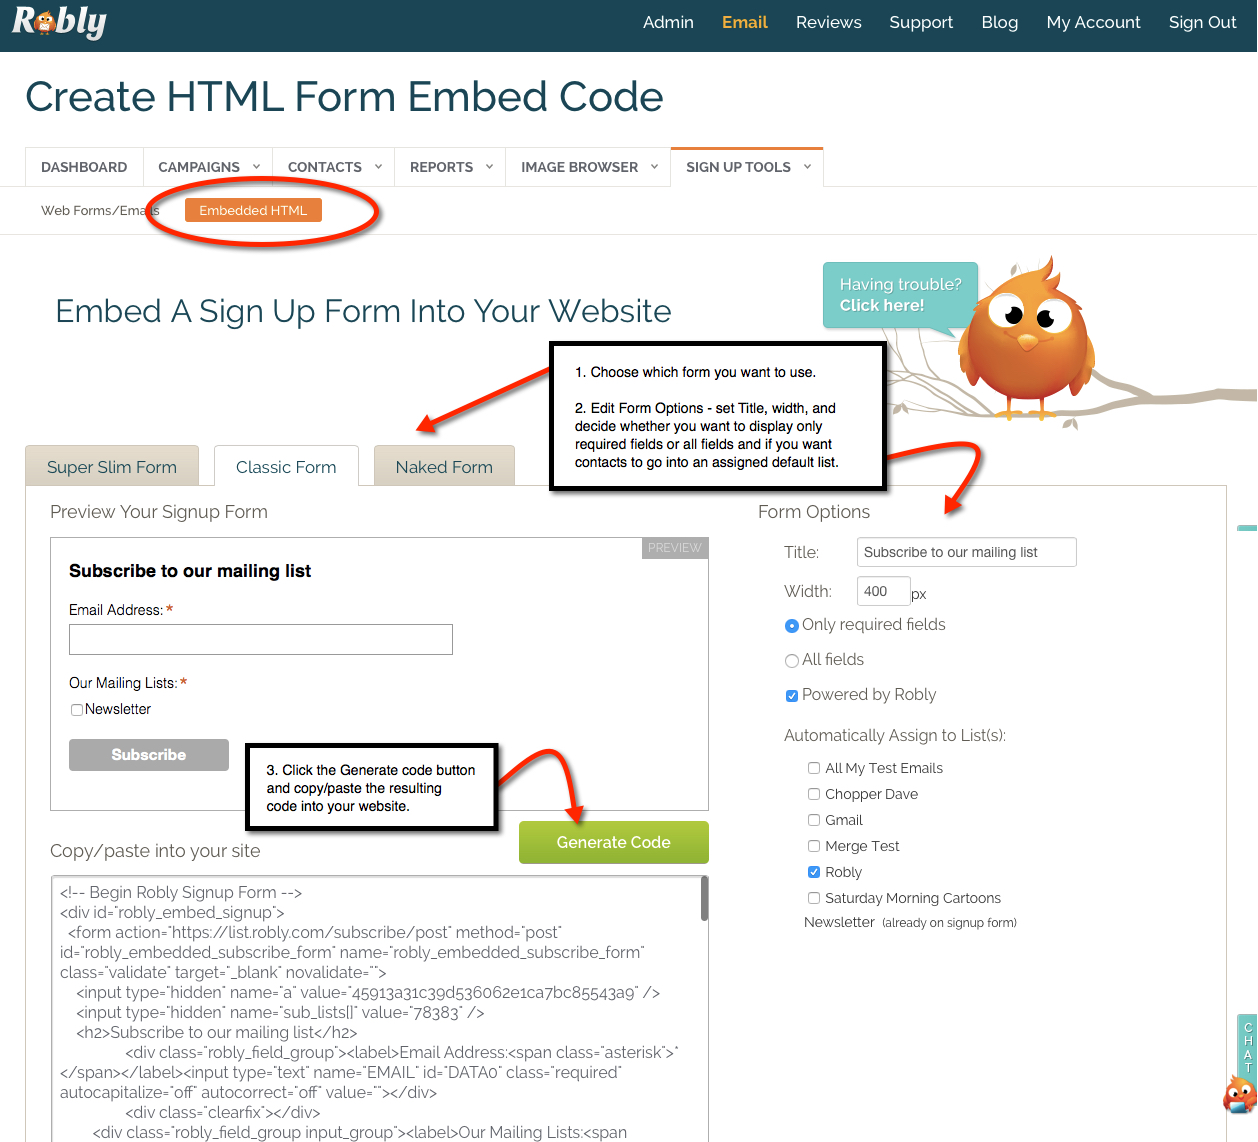 Create an HTML form for your website